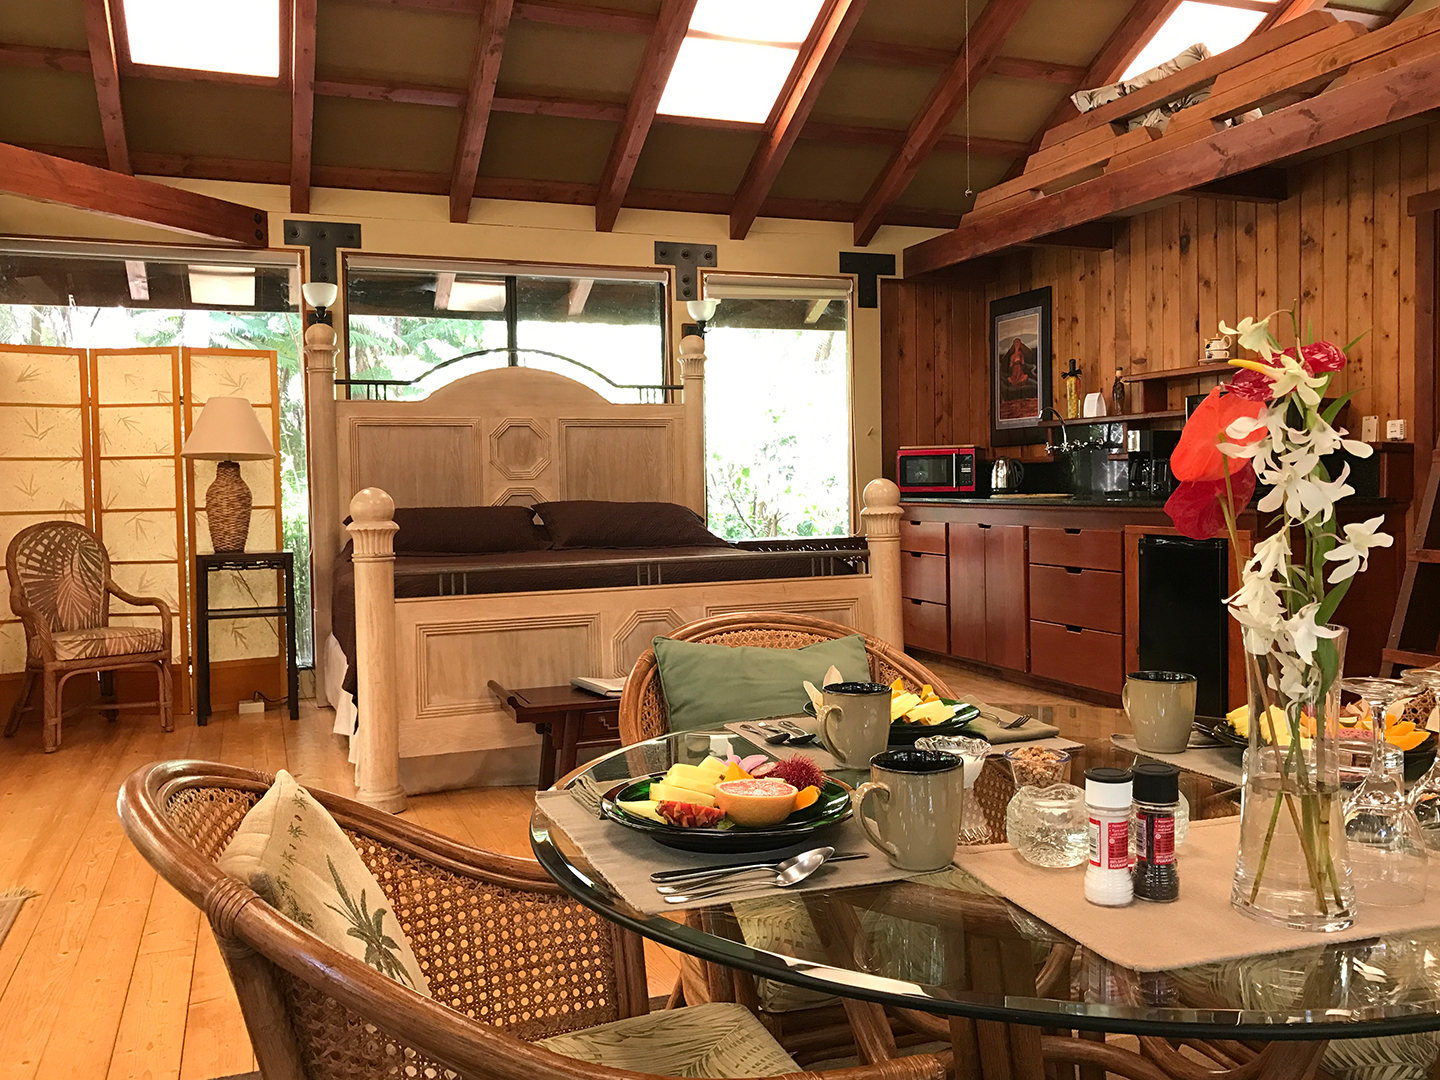 A kitchen with a table in a restaurant at Volcano Village Lodge.